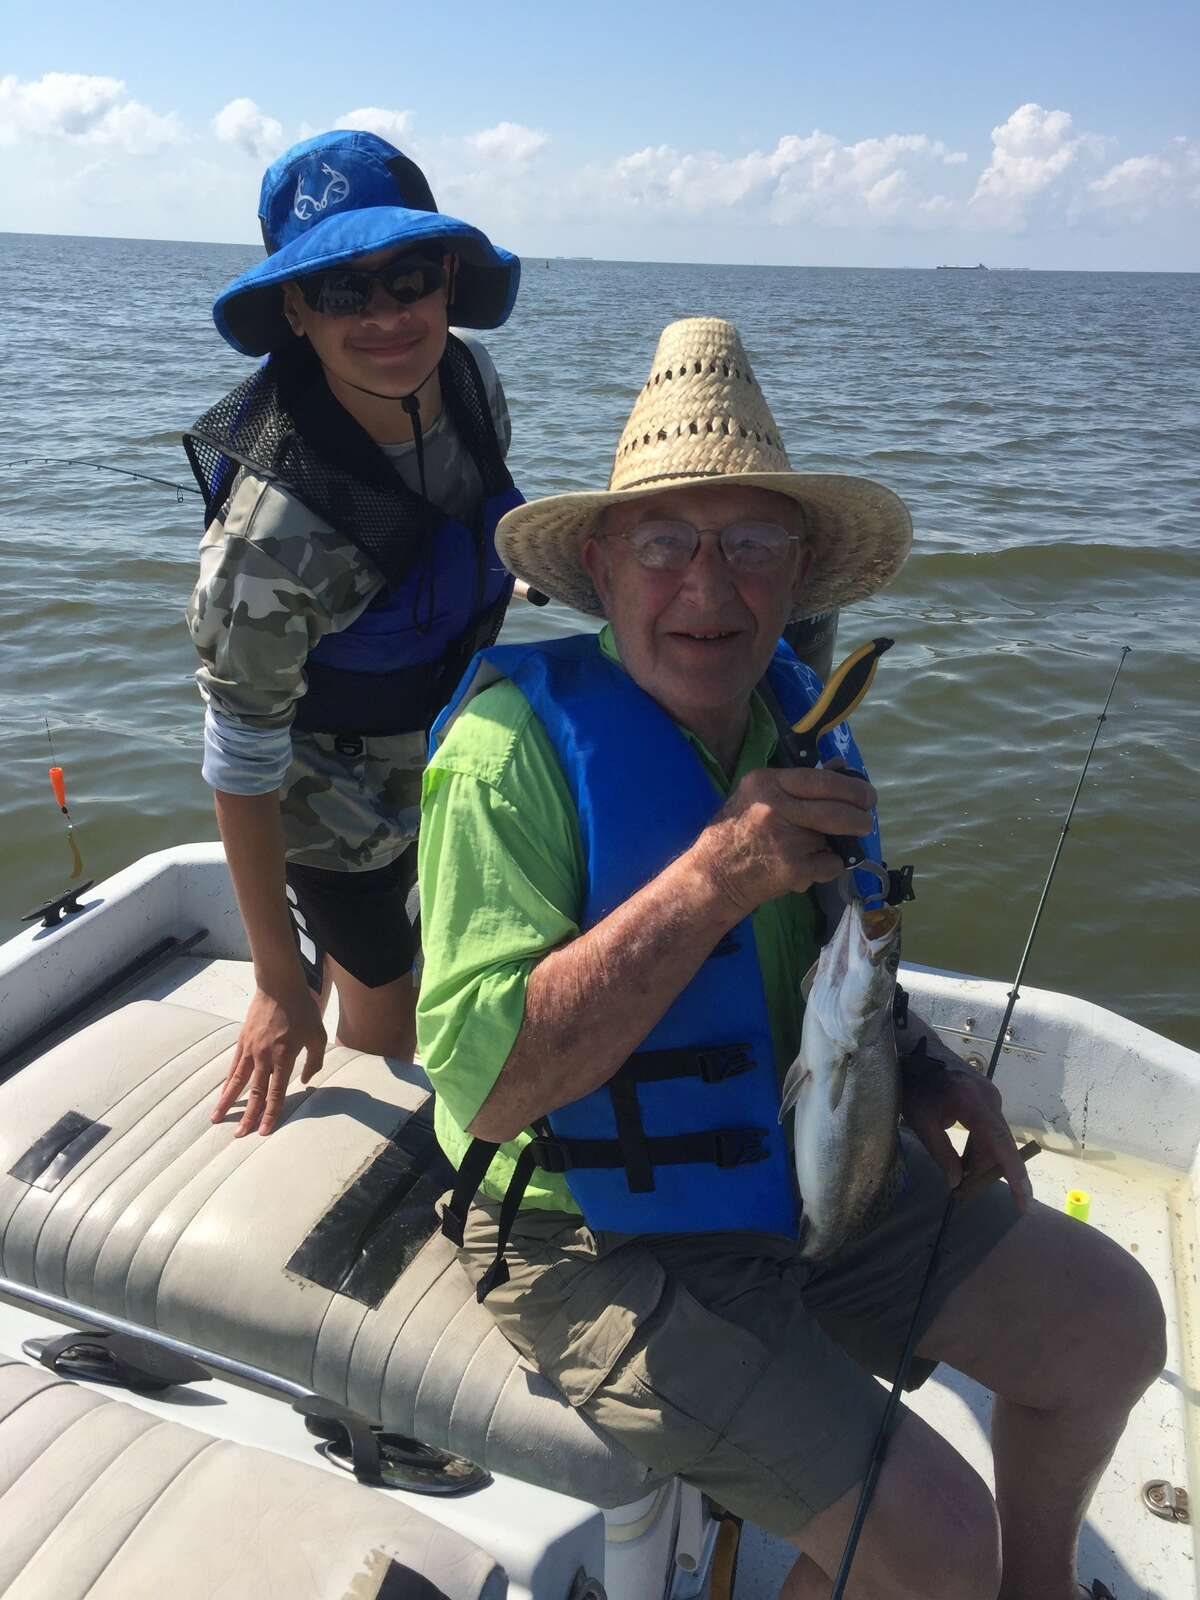 Jerry Sebek, a 78-year-old man from San Marcos, died last month after he contracted a flesh-eating disease while fishing near Palacios, family members said.